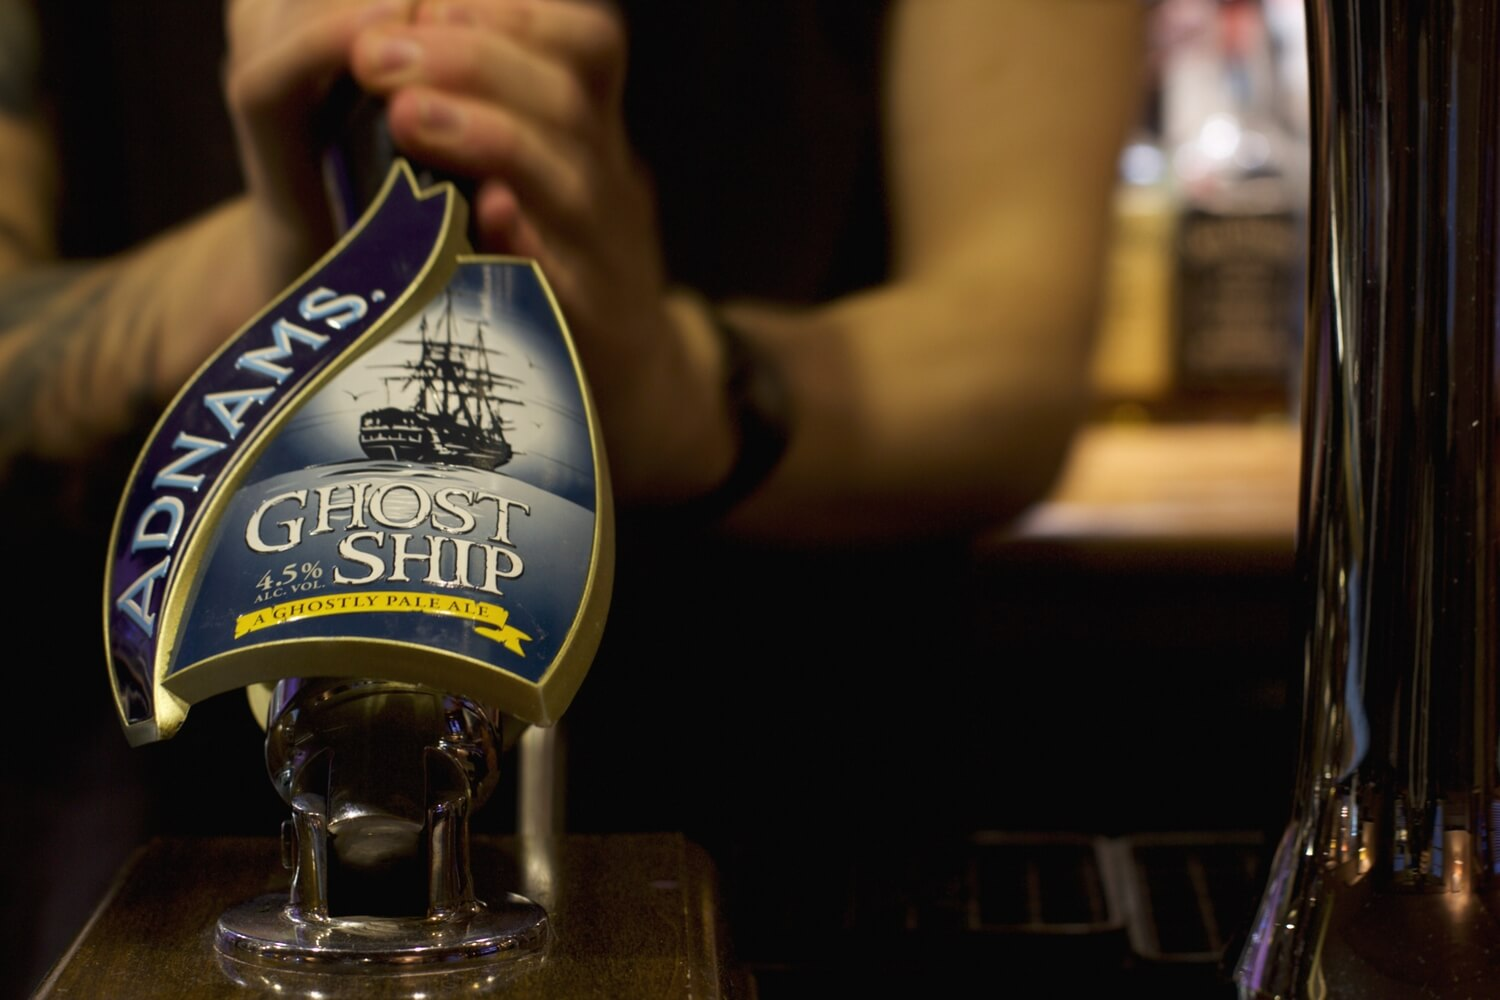 Ghost Ship - The Purple Dog Pub Colchester